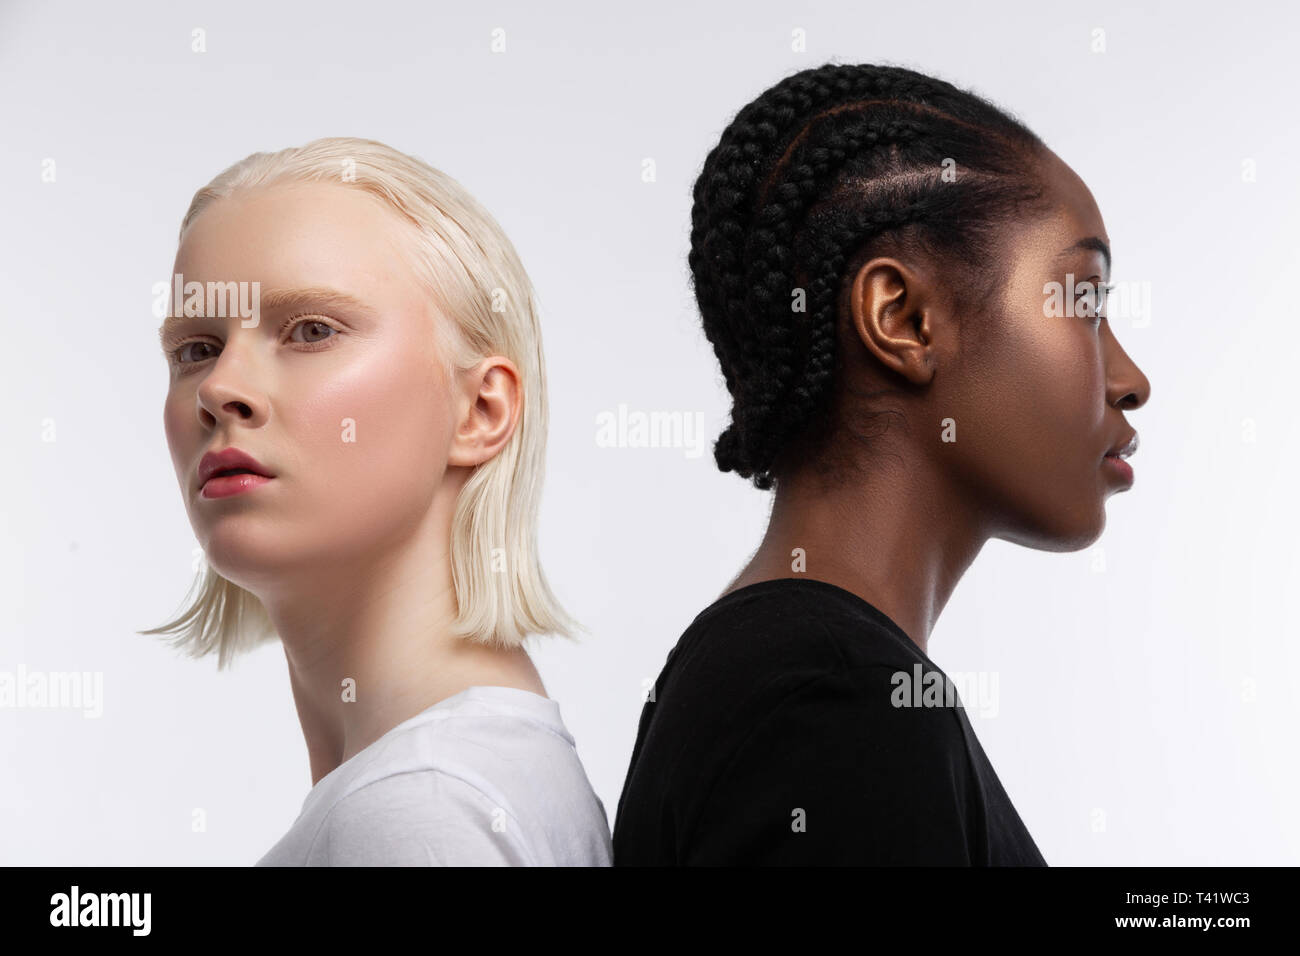 Diversity and equality. Professional models with different skin color posing for diversity and equality article - Stock Image